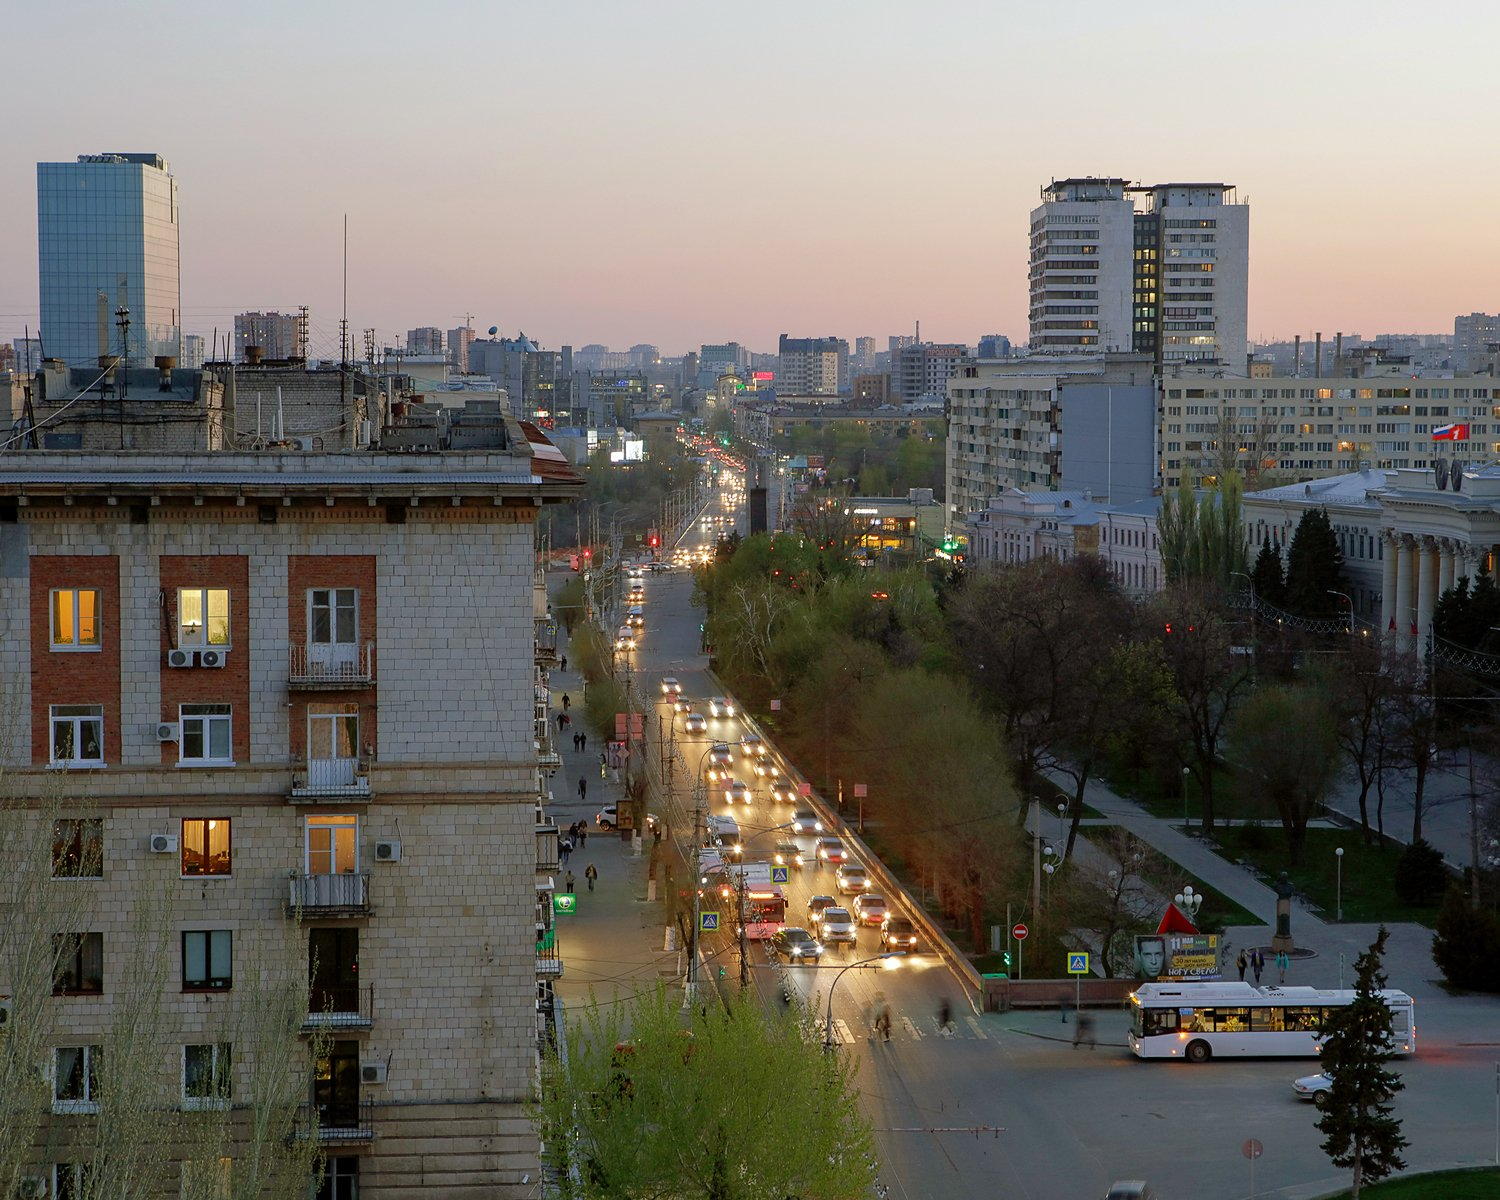 48 hours in Volgograd: discover young Russia in our new documentary series